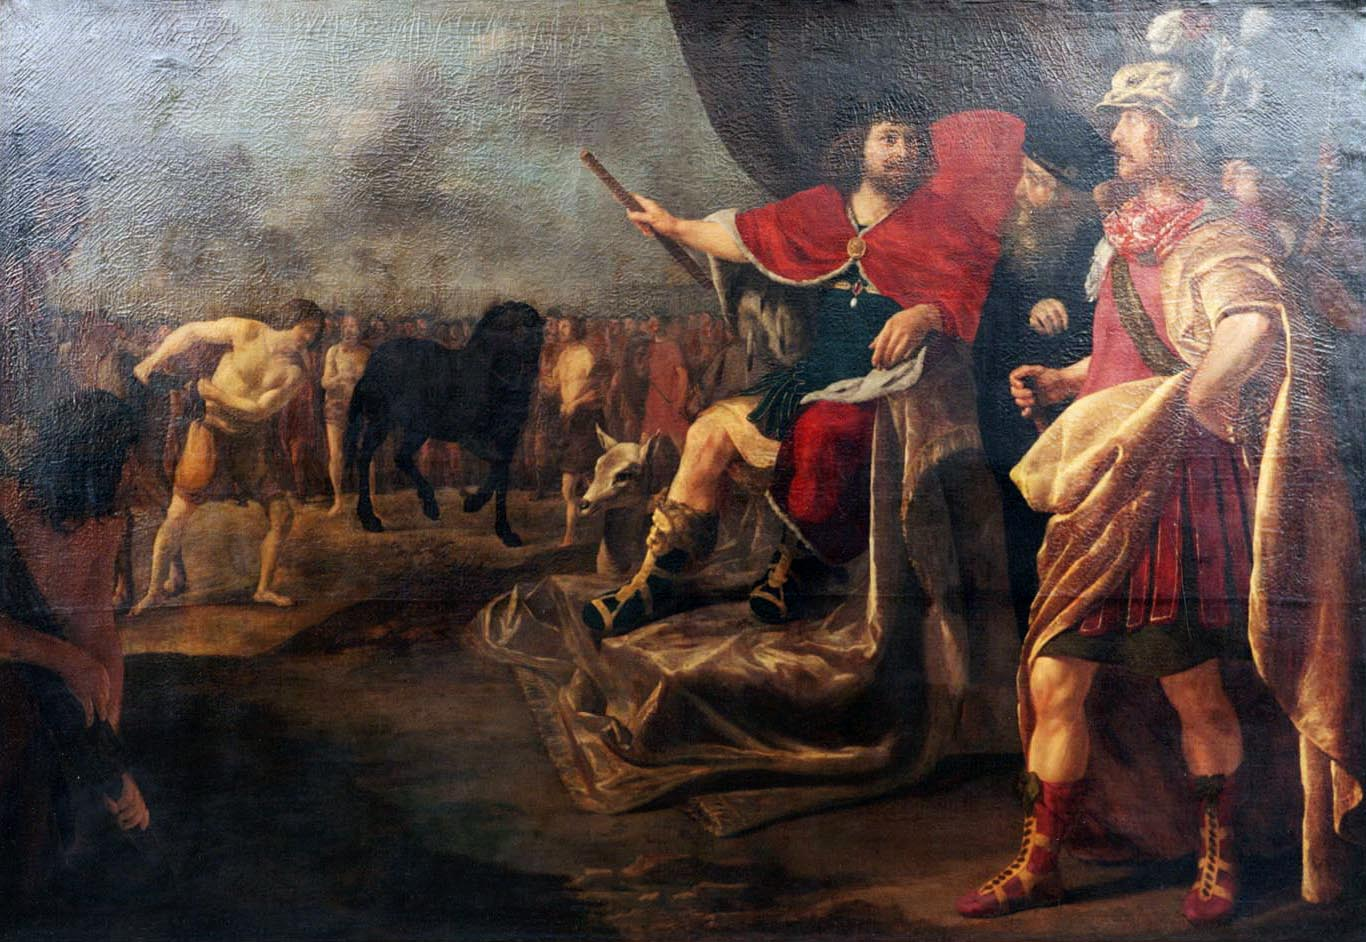 gaius marius affect on roman history essay Gaius marius (158/157-86 bc) has a major transformational impact on the history of the late roman republic although none of his ancestors had been a member of.